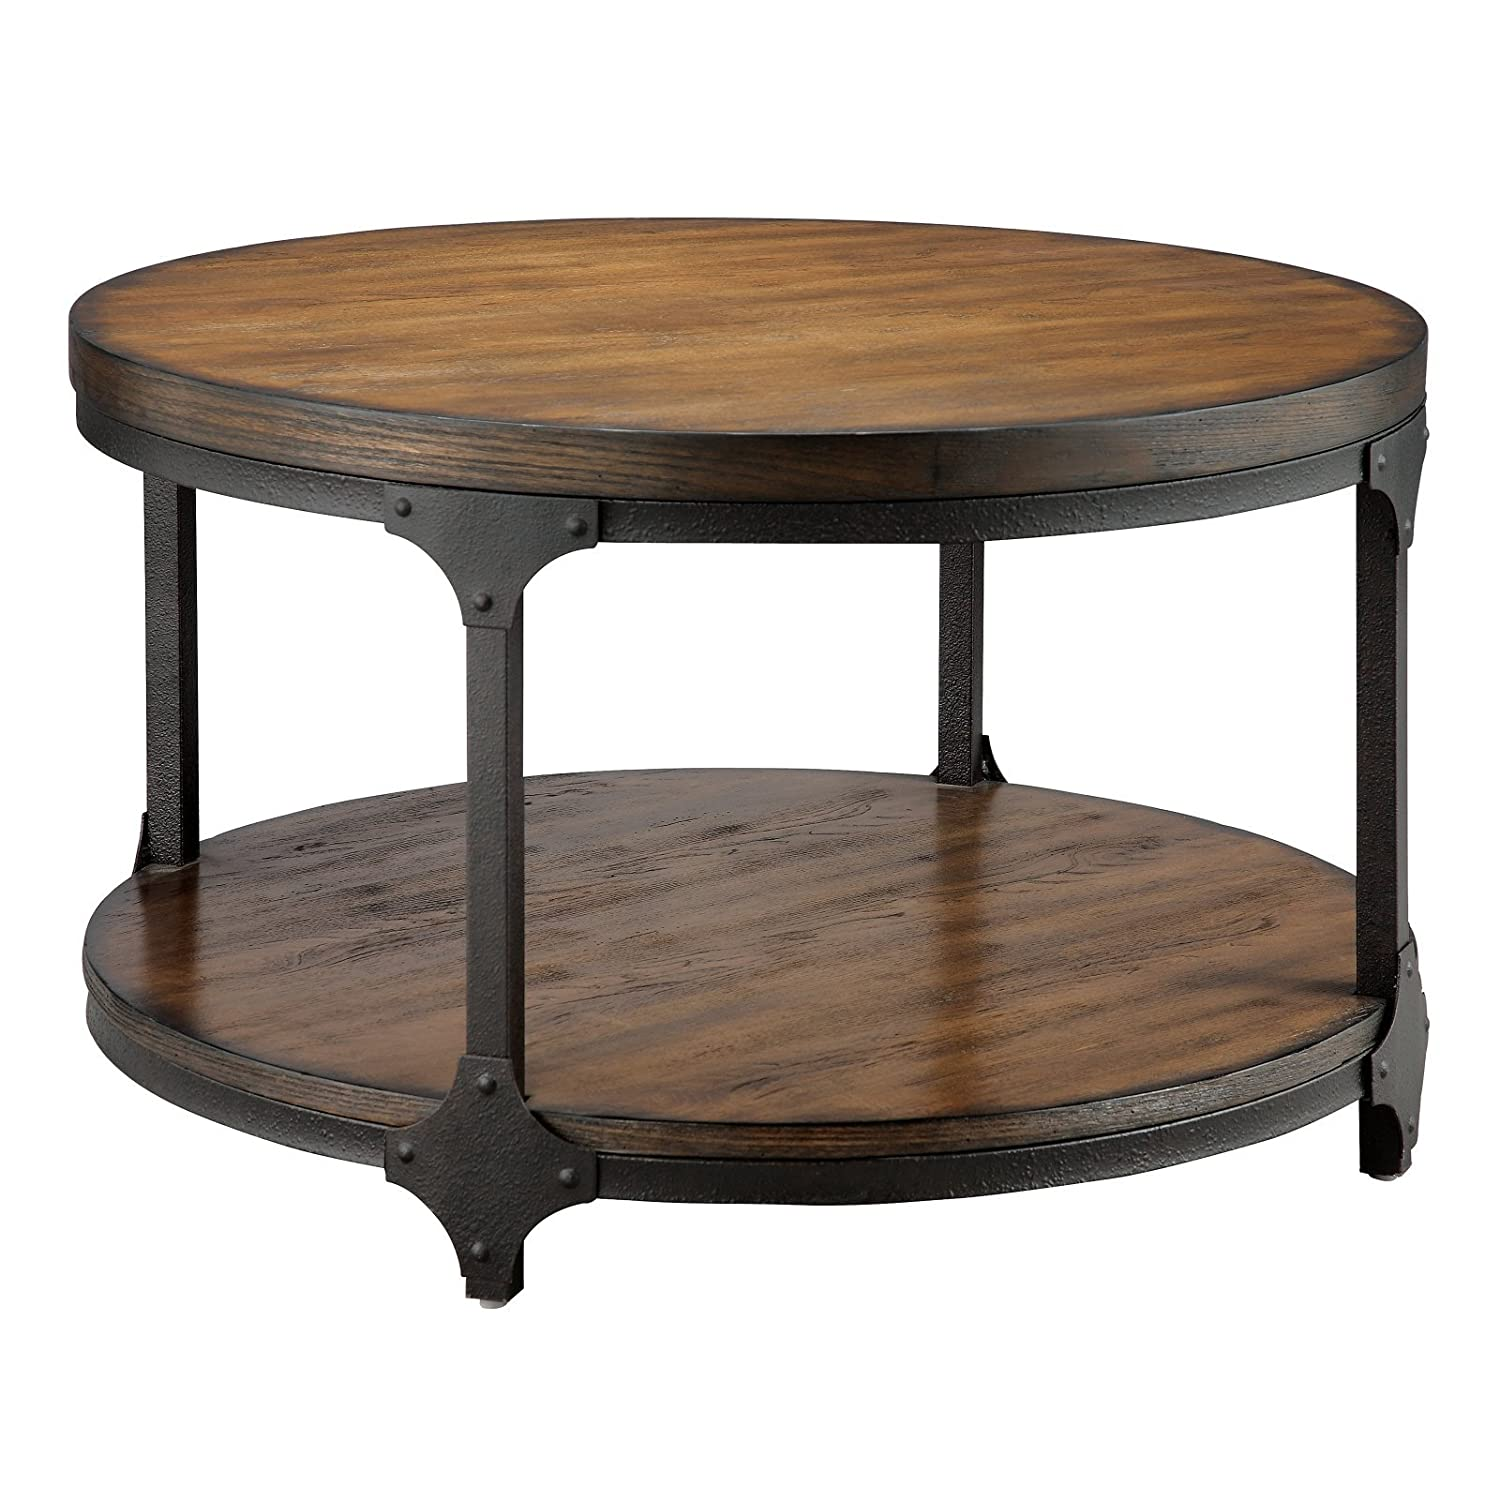 Rustic Industrial Style Round Wood Metal Coffee Cocktail Table